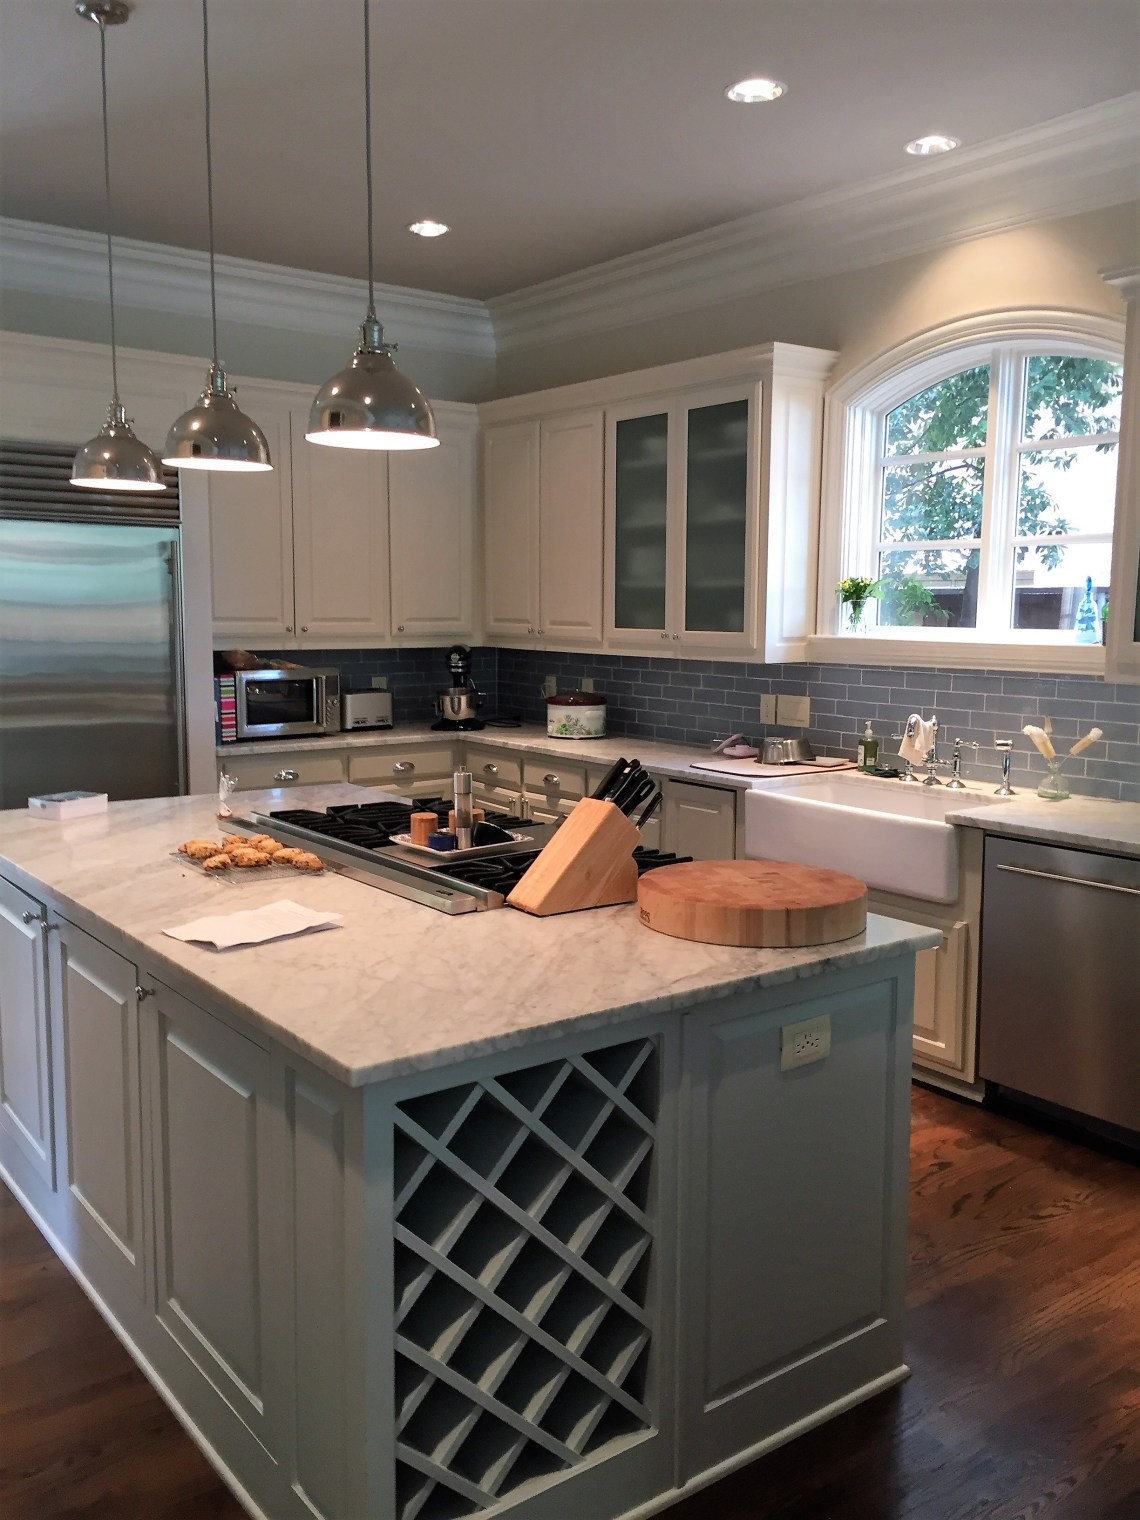 before and after photos of kitchen renovation